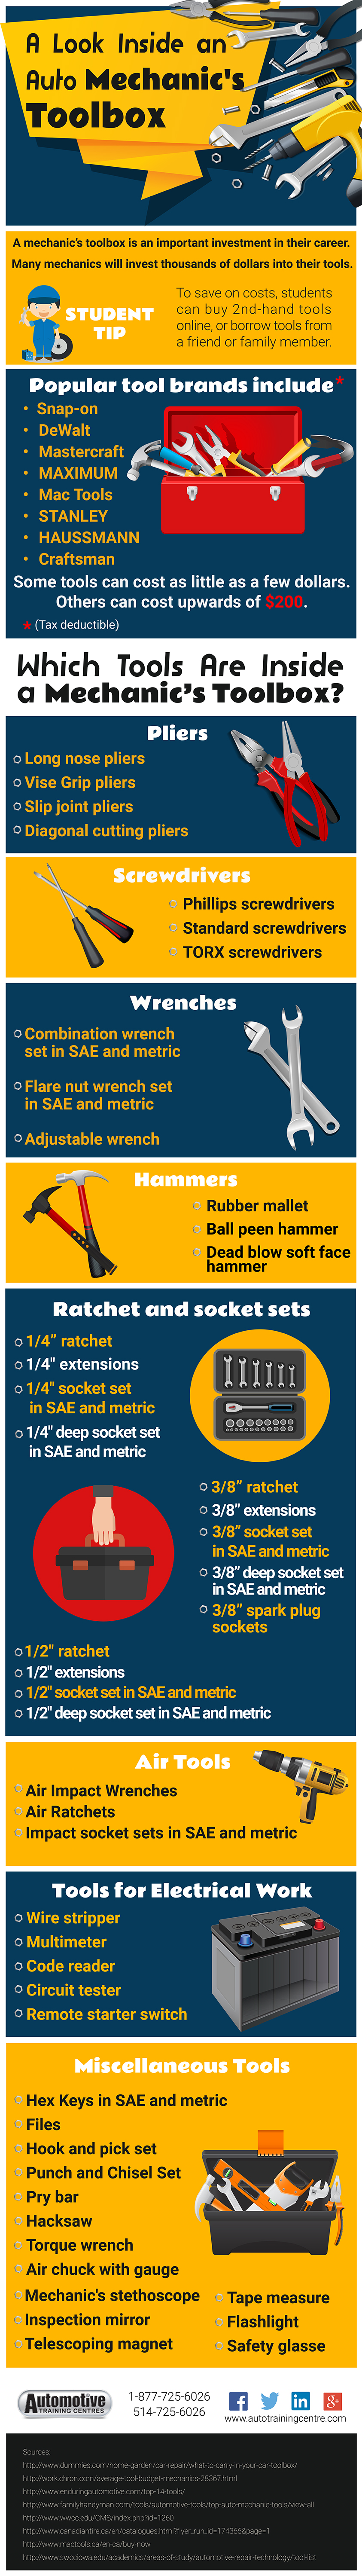 [Infographic] A Look Inside an Auto Mechanic's Toolbox